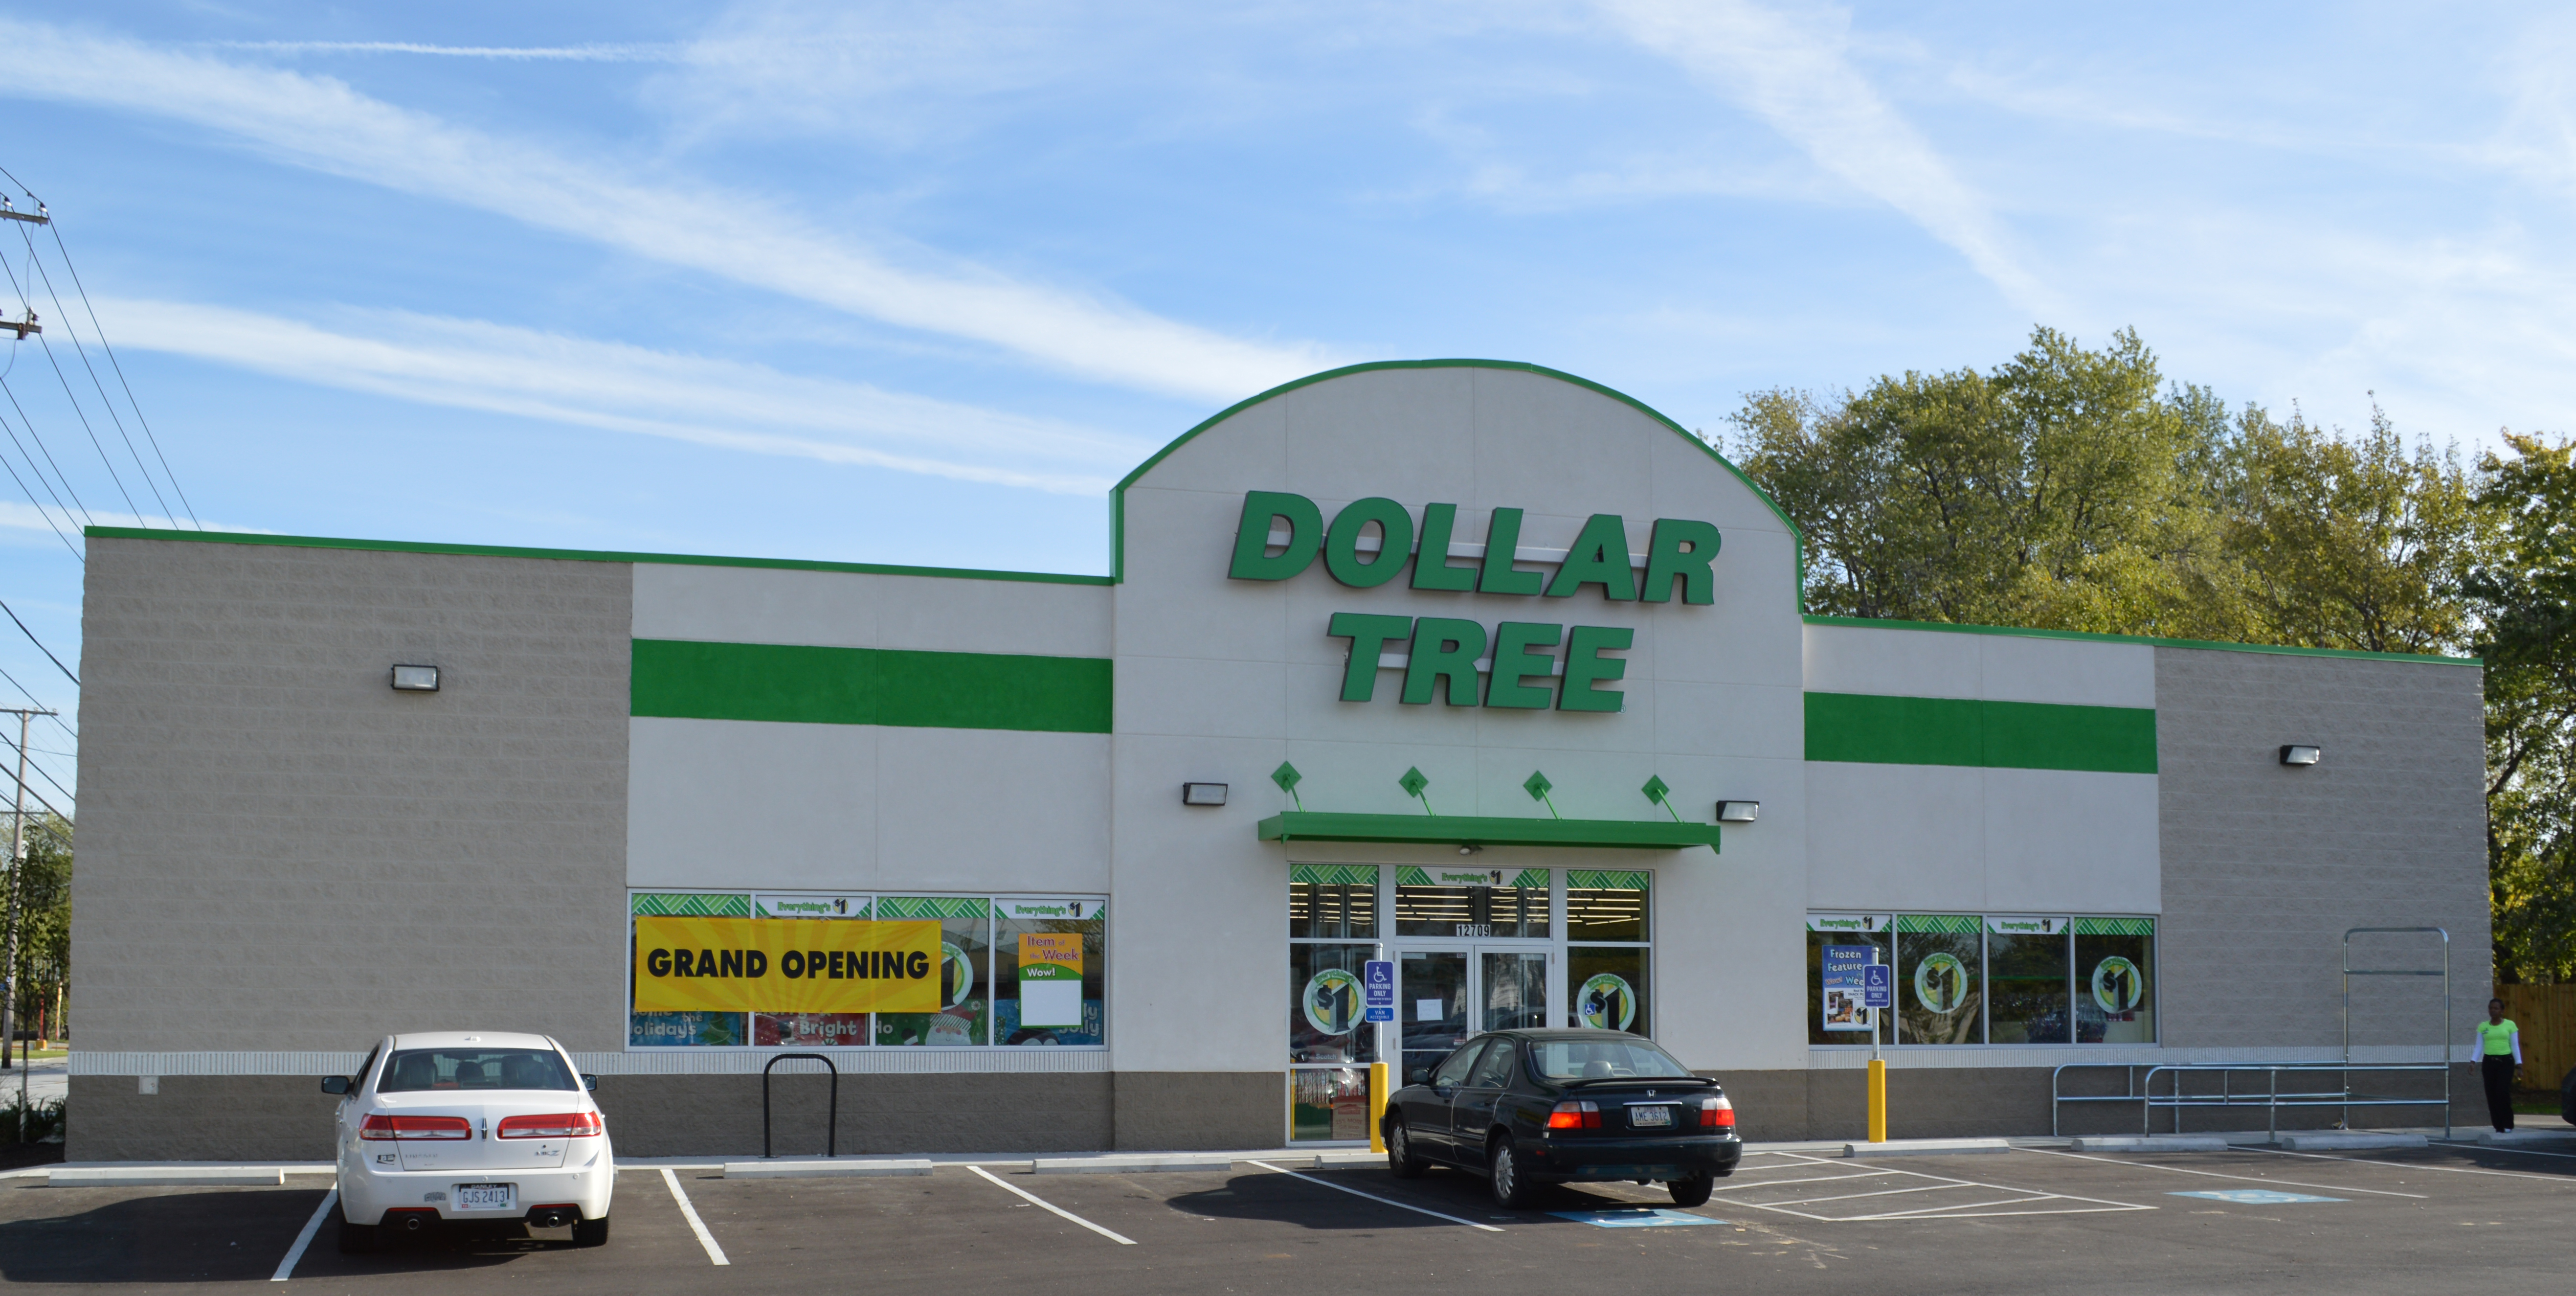 Stand-alone Dollar Tree with a Grand Opening banner on the window and a black car in the parking lot